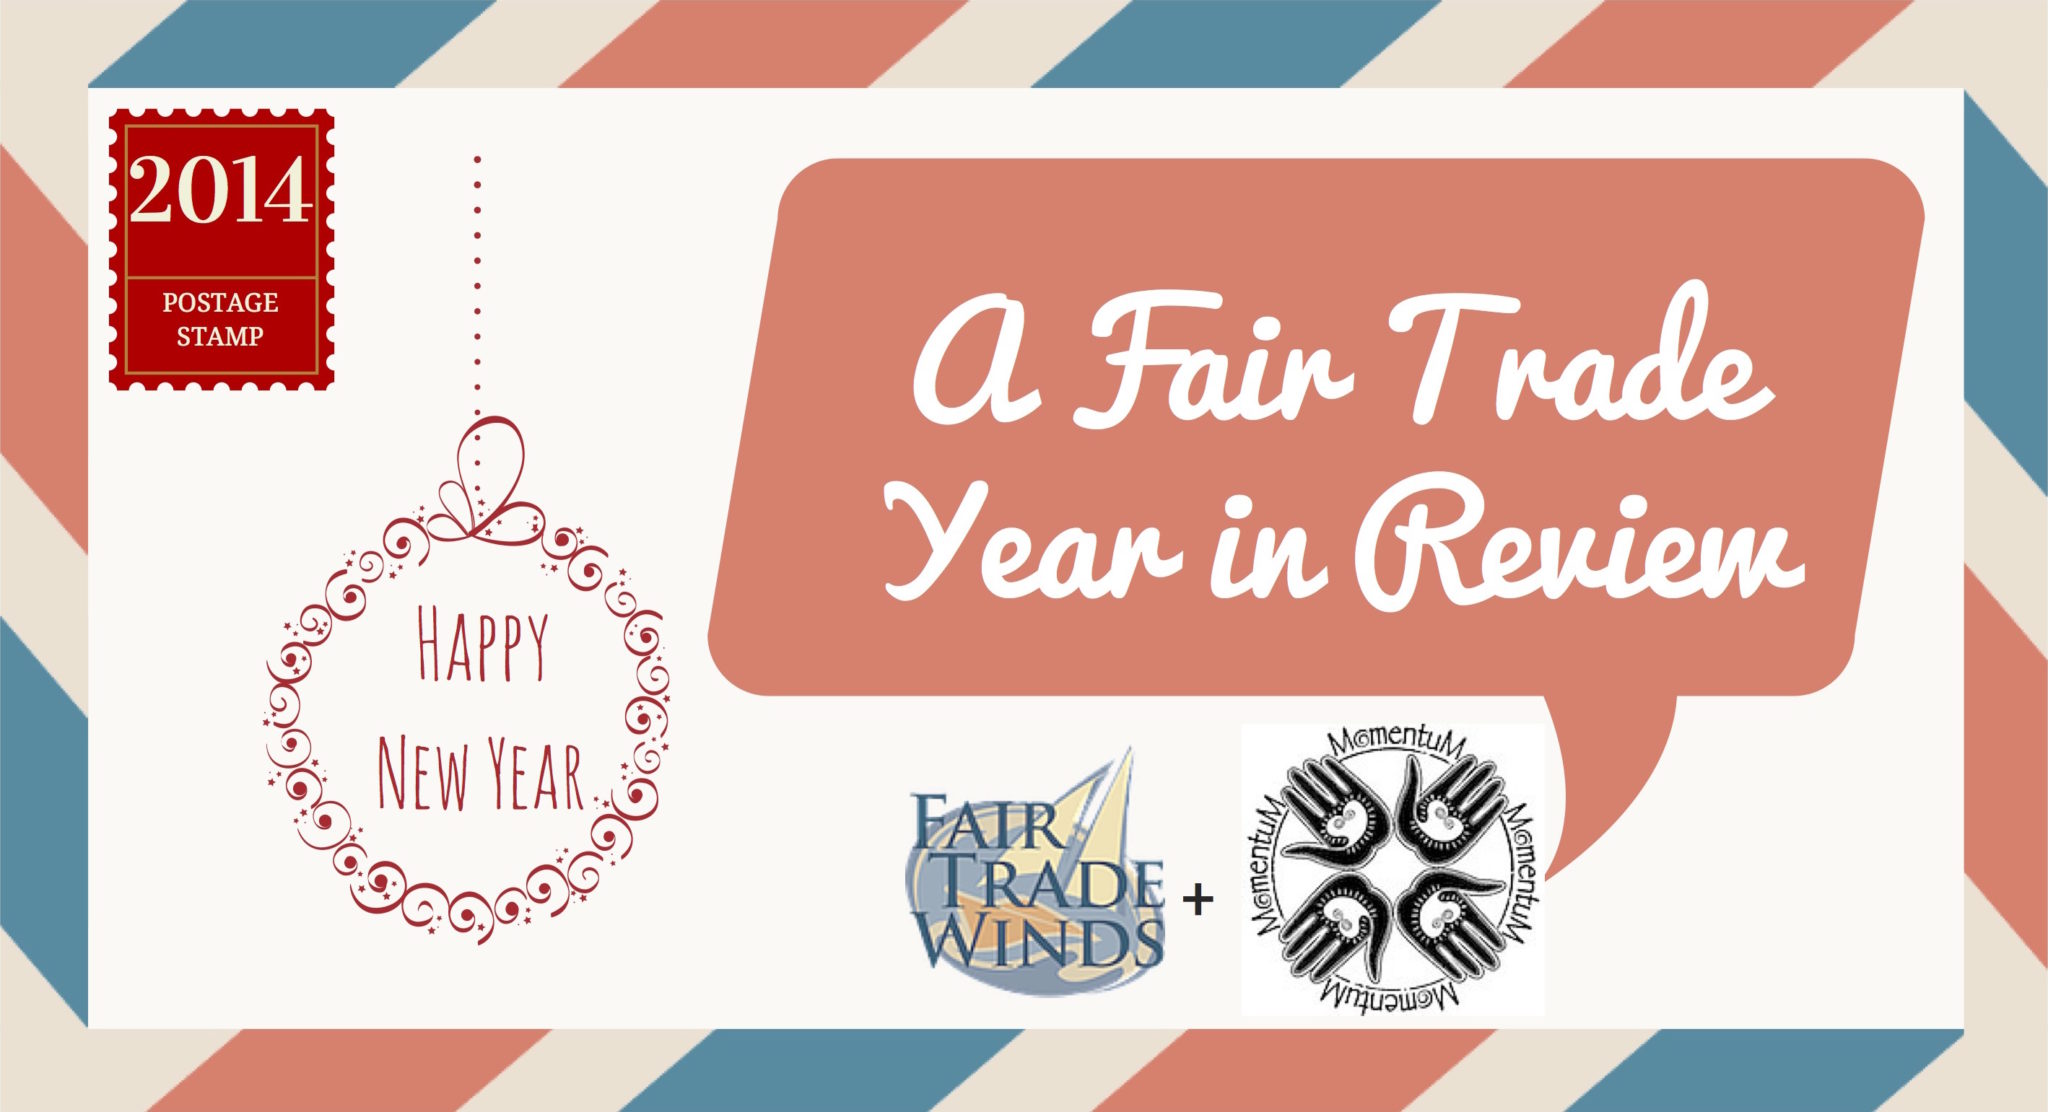 2014 a fair trade year in review